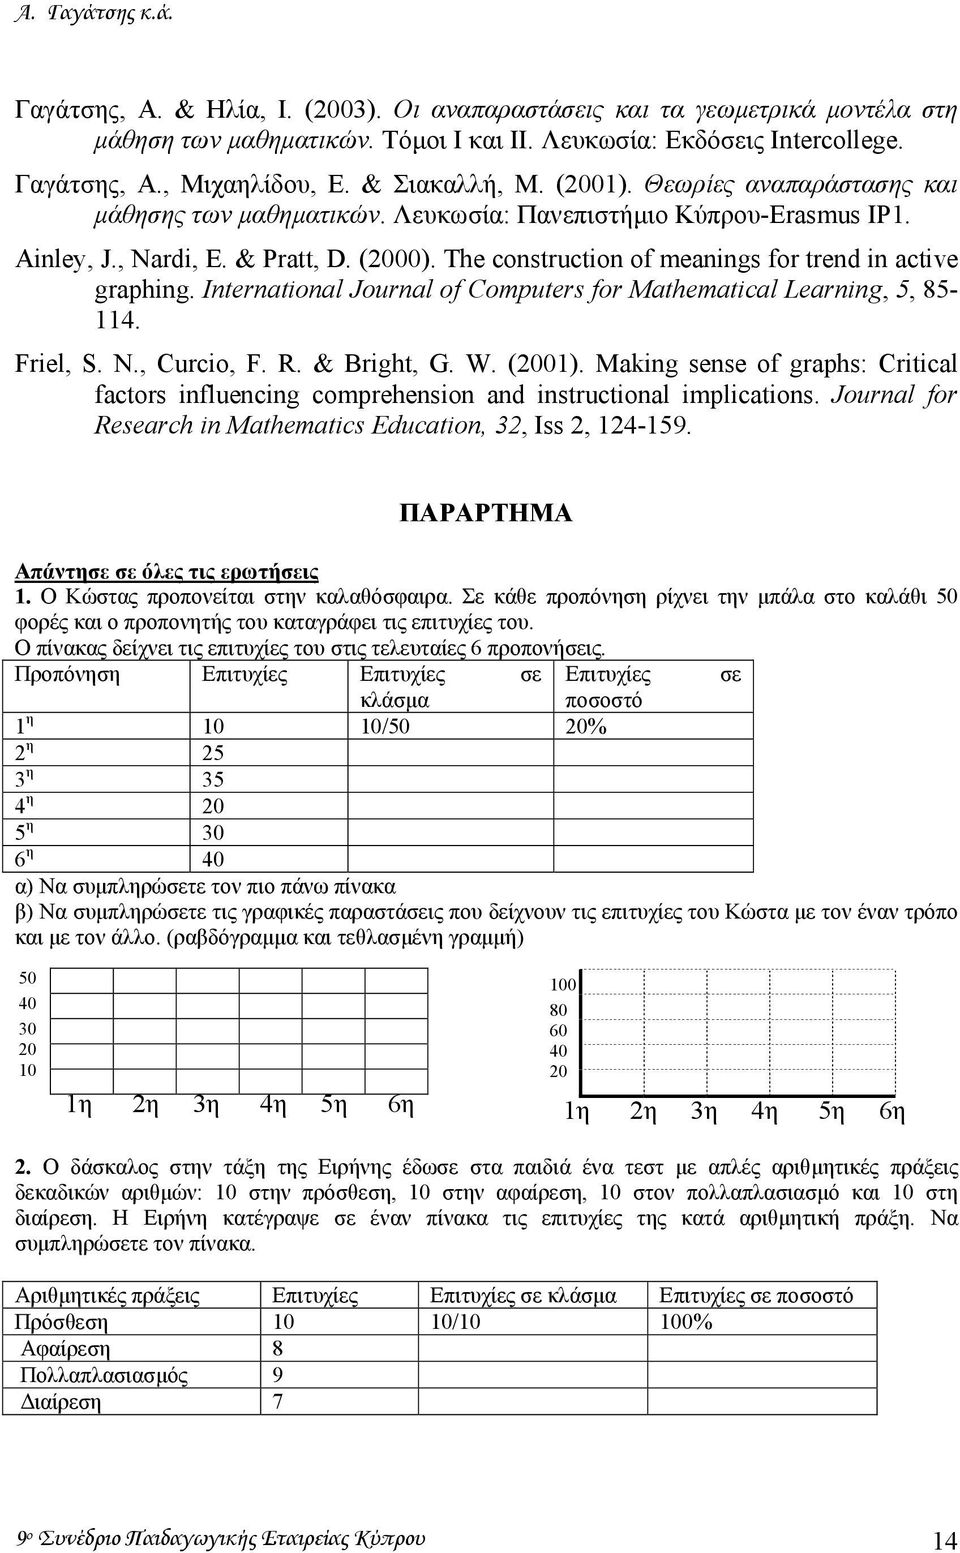 The construction of meanings for trend in active graphing. International Journal of Computers for Mathematical Learning, 5, 85-114. Friel, S. N., Curcio, F. R. & Bright, G. W. (2001).